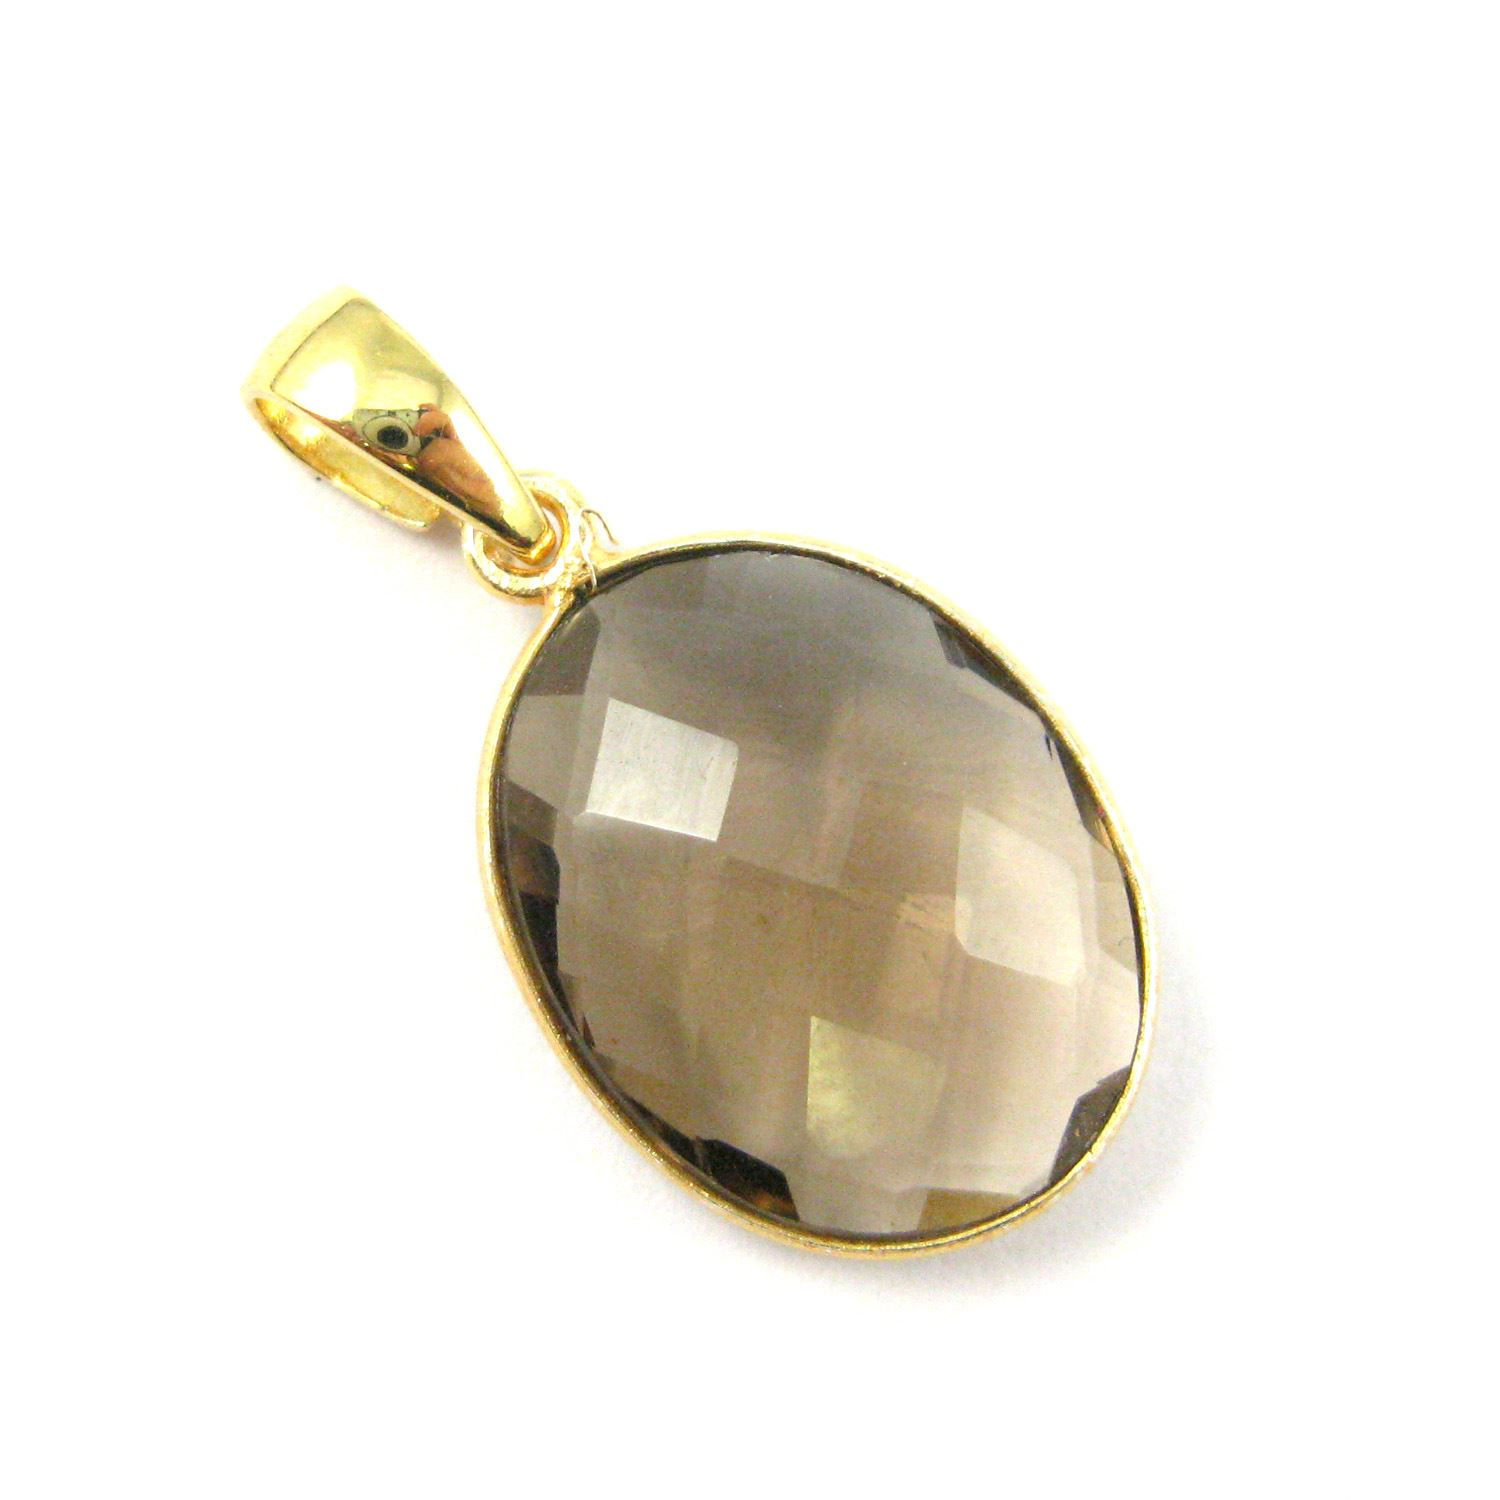 Bezel Gemstone Pendant with Bail - Gold plated Sterling Silver Oval Gem Pendant - Ready for Necklace - 28mm - Smokey Quartz